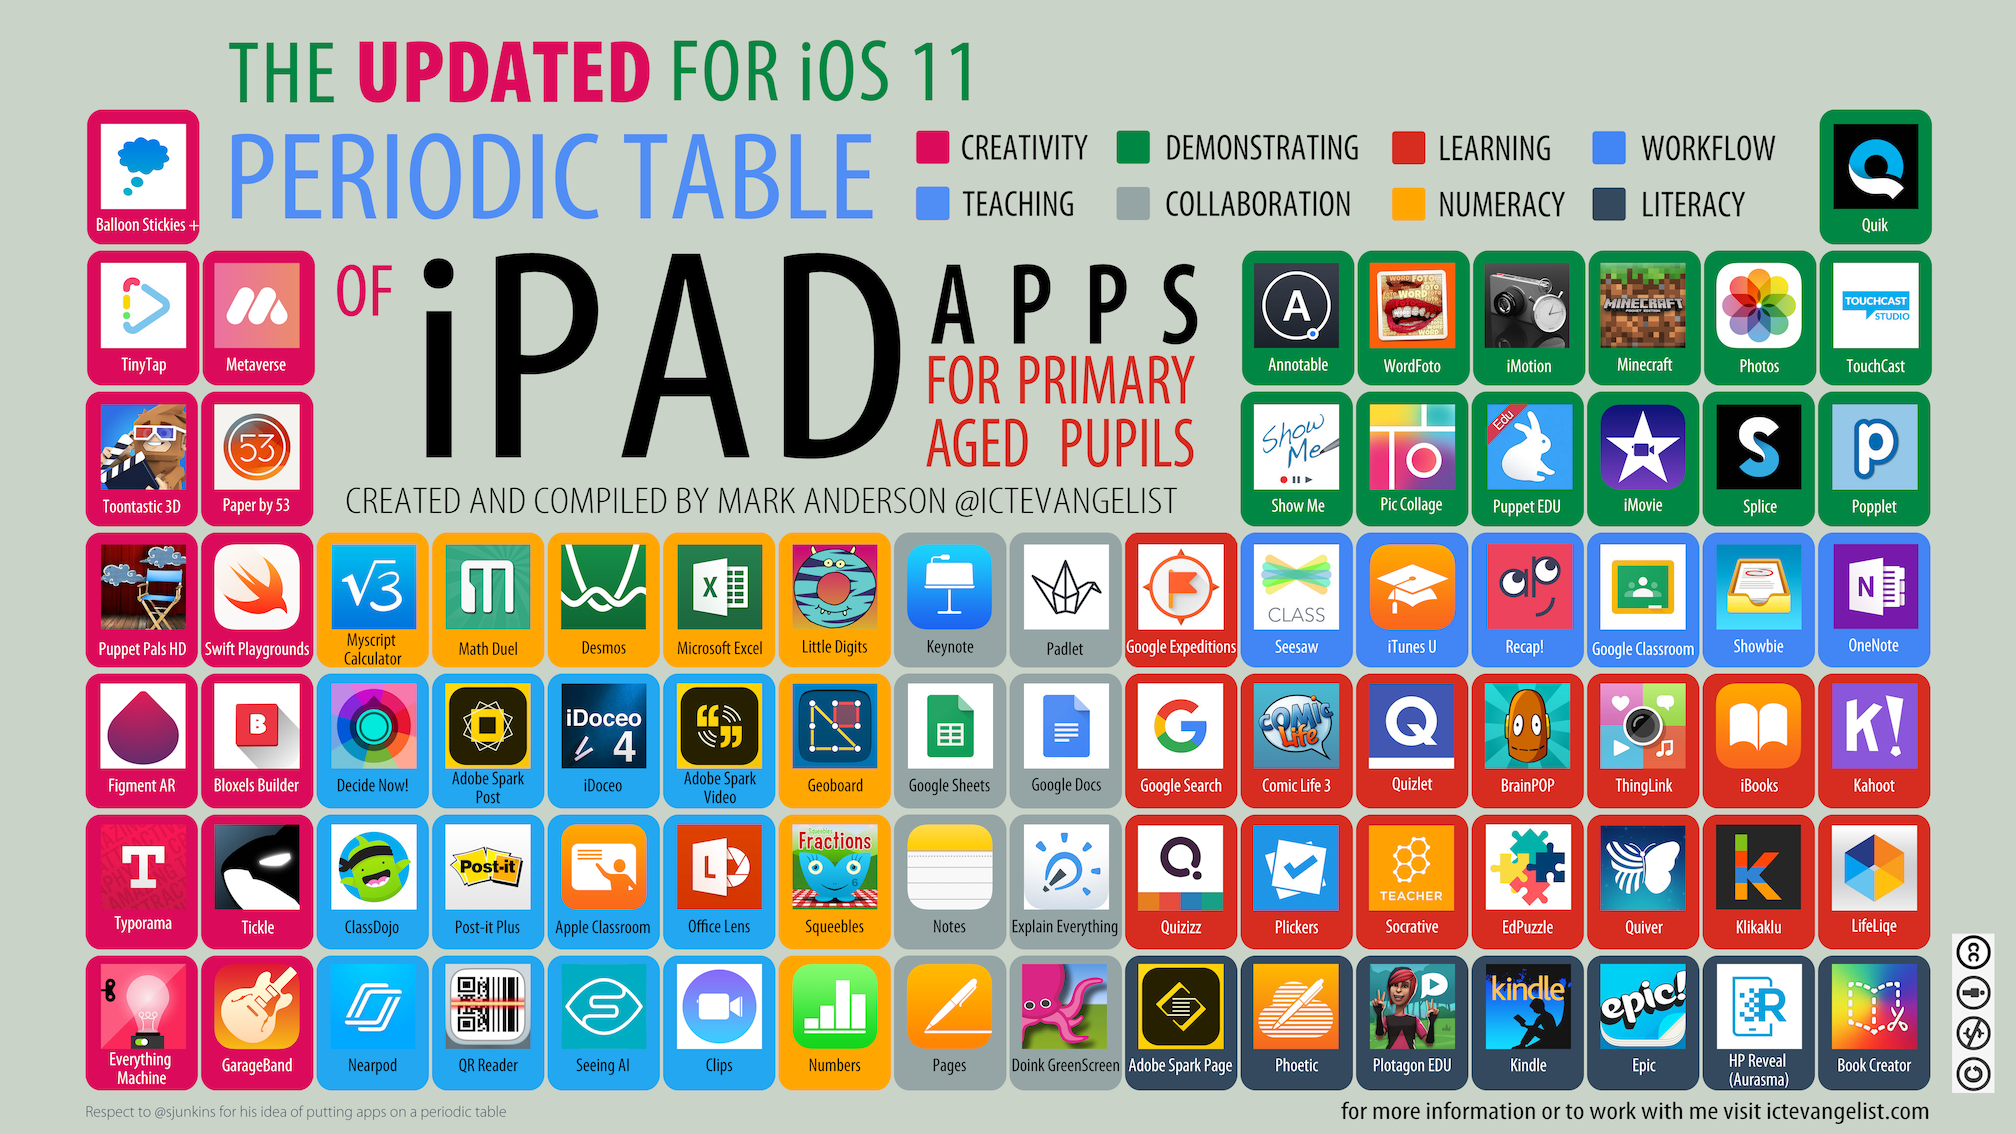 Ar ictevangelist new and updated periodic table of ipad apps for primary aged pupils for ios 11 urtaz